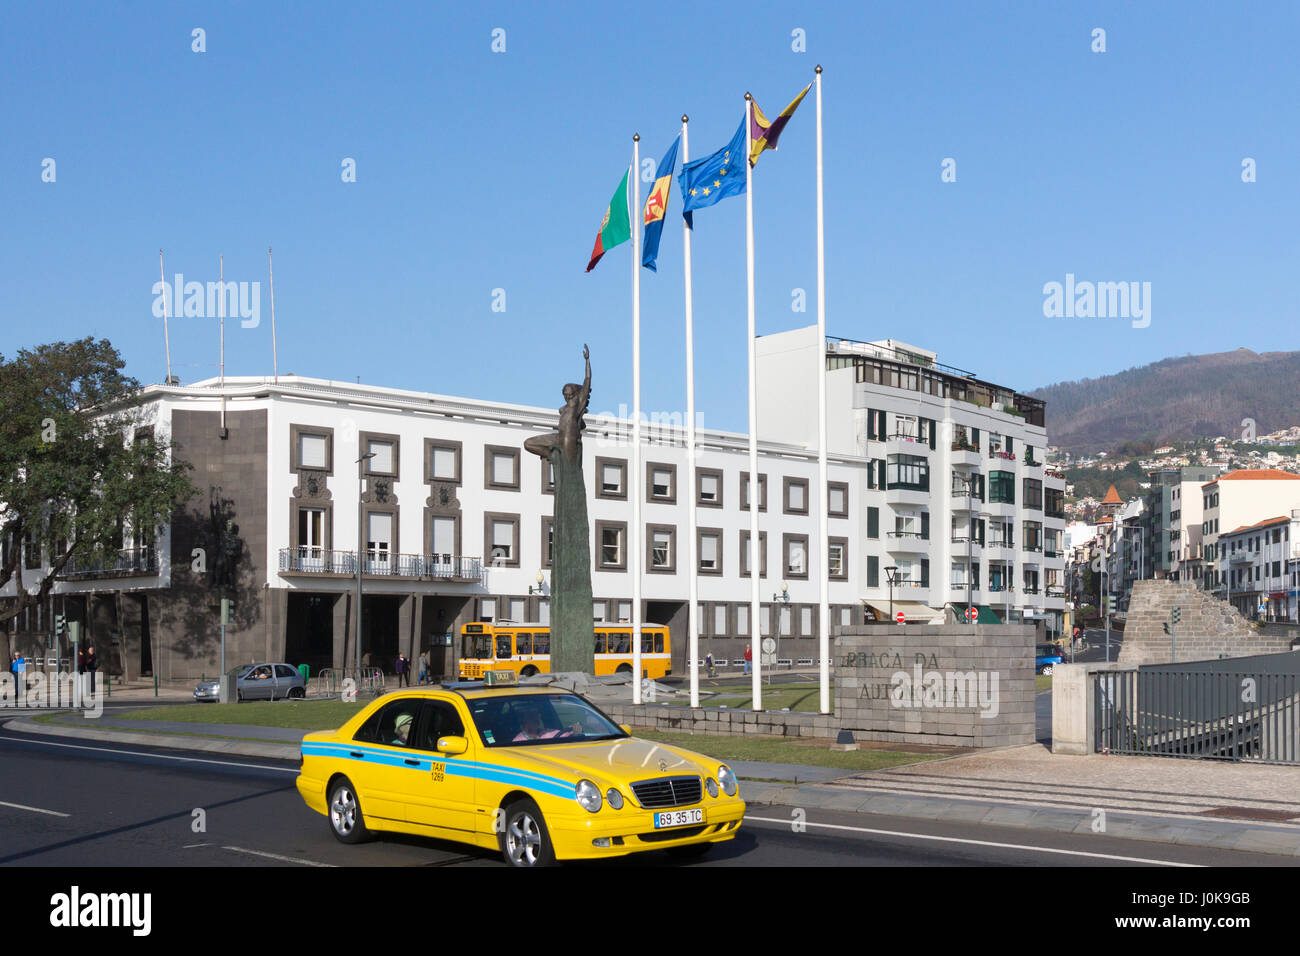 A typical Madeiran taxi passing in front og Praça da Autonomia (Autonomy Square) in Funchal - Stock Image